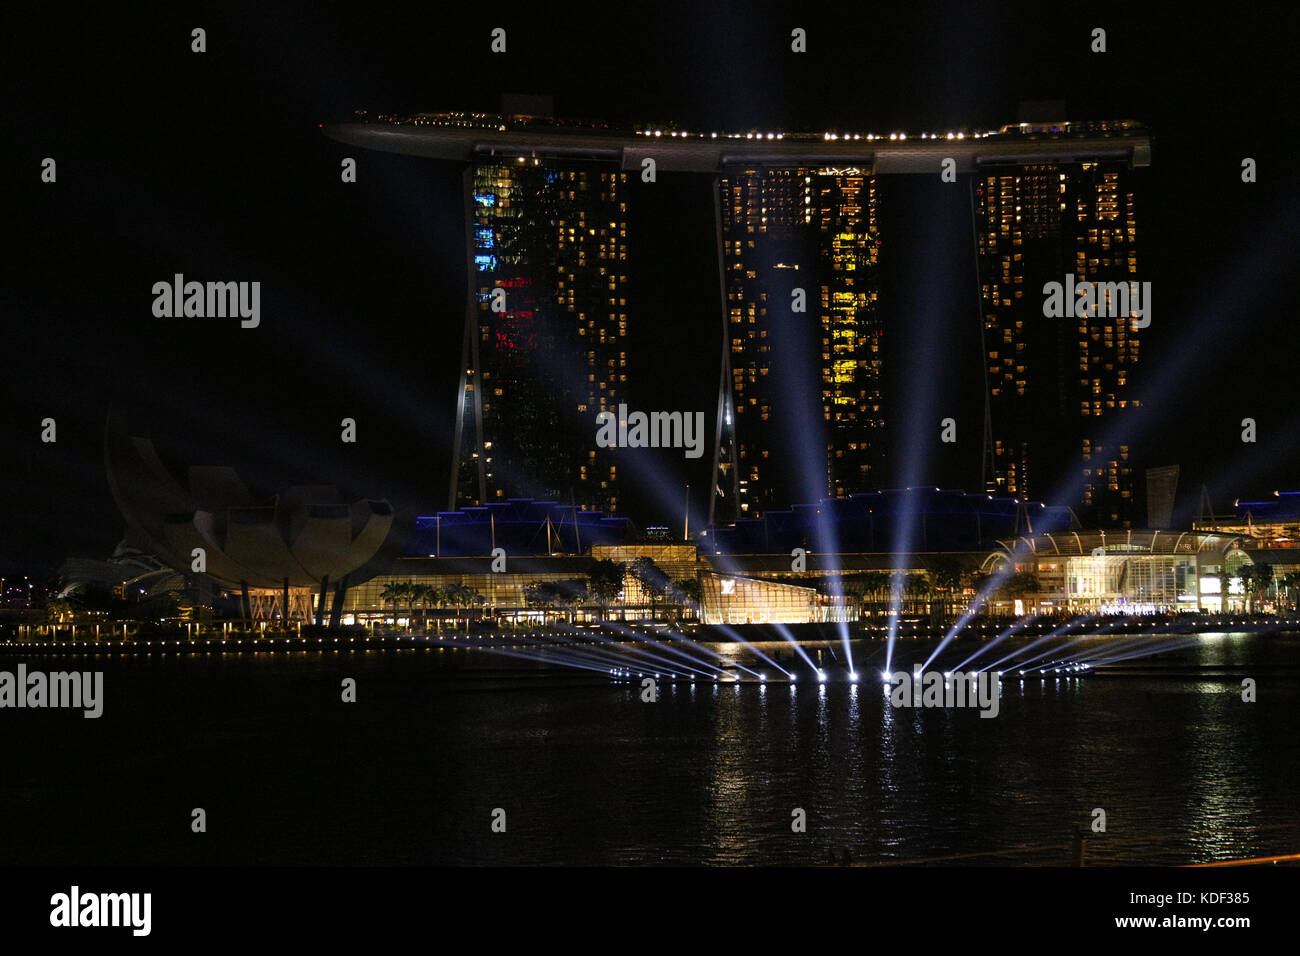 Night light show, Marina Bay Sands, Singapore - Stock Image